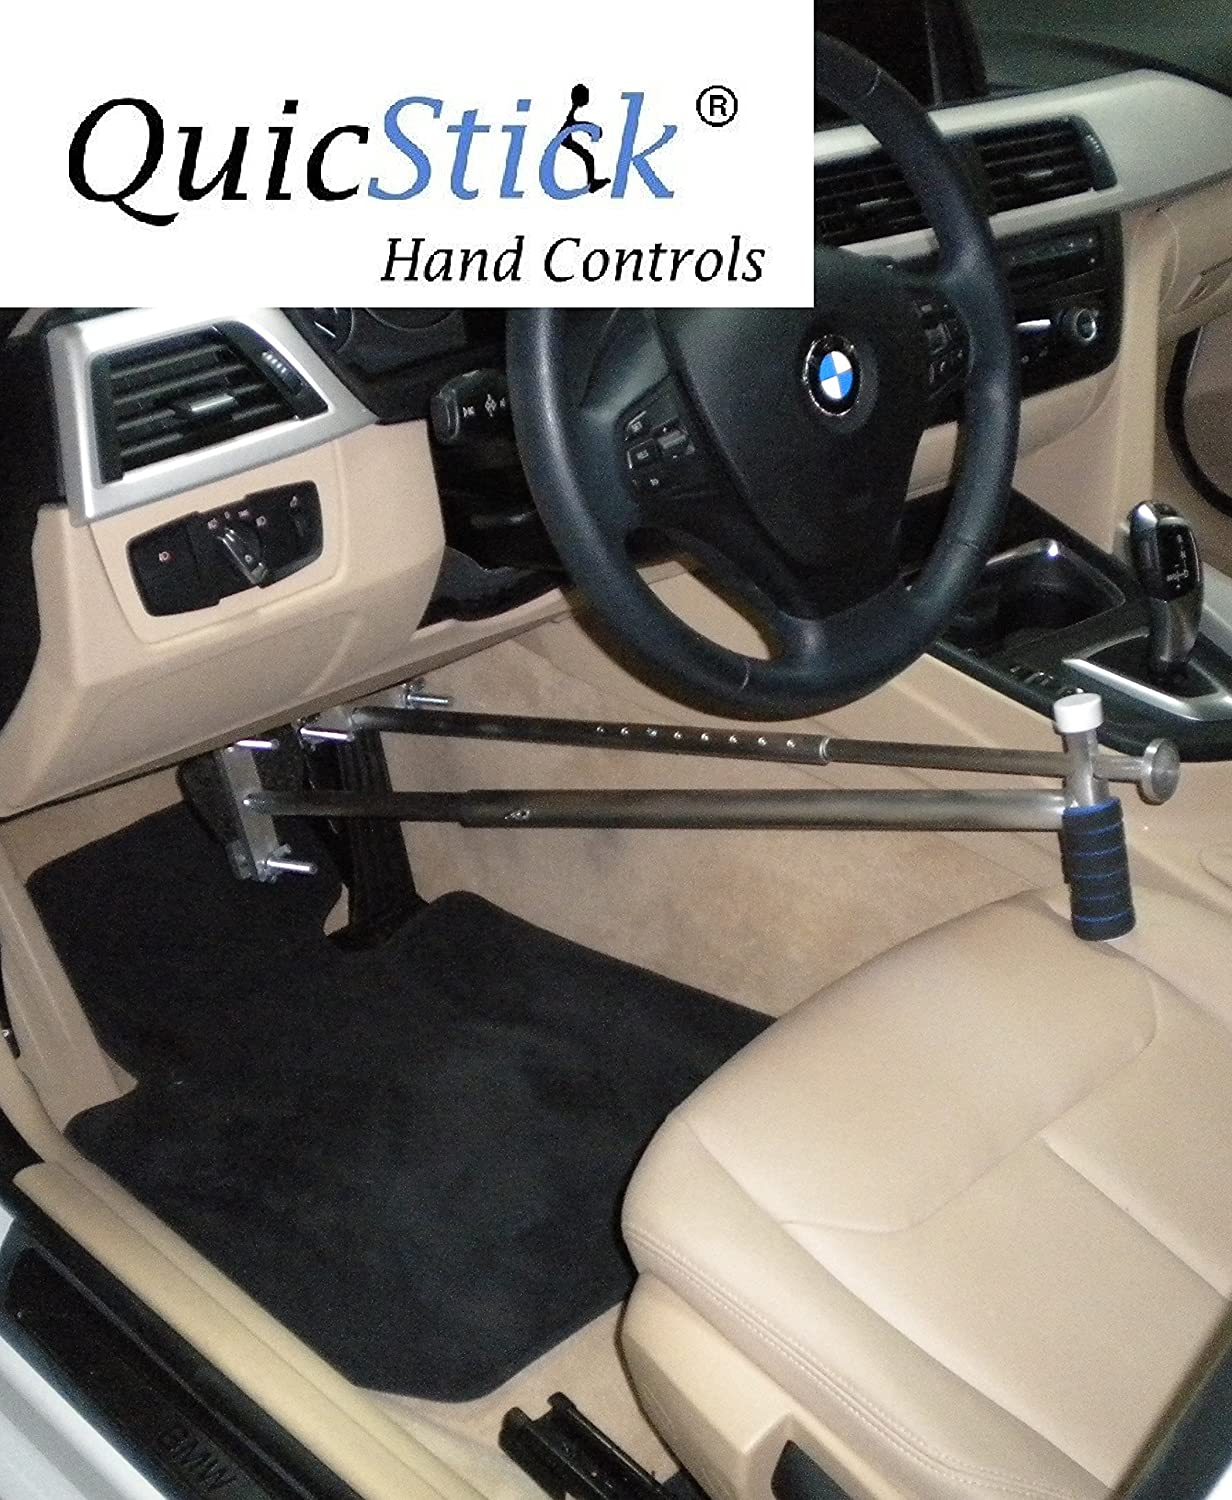 Hand Controls For Cars >> Quicstick Portable Hand Controls Handicap Driving